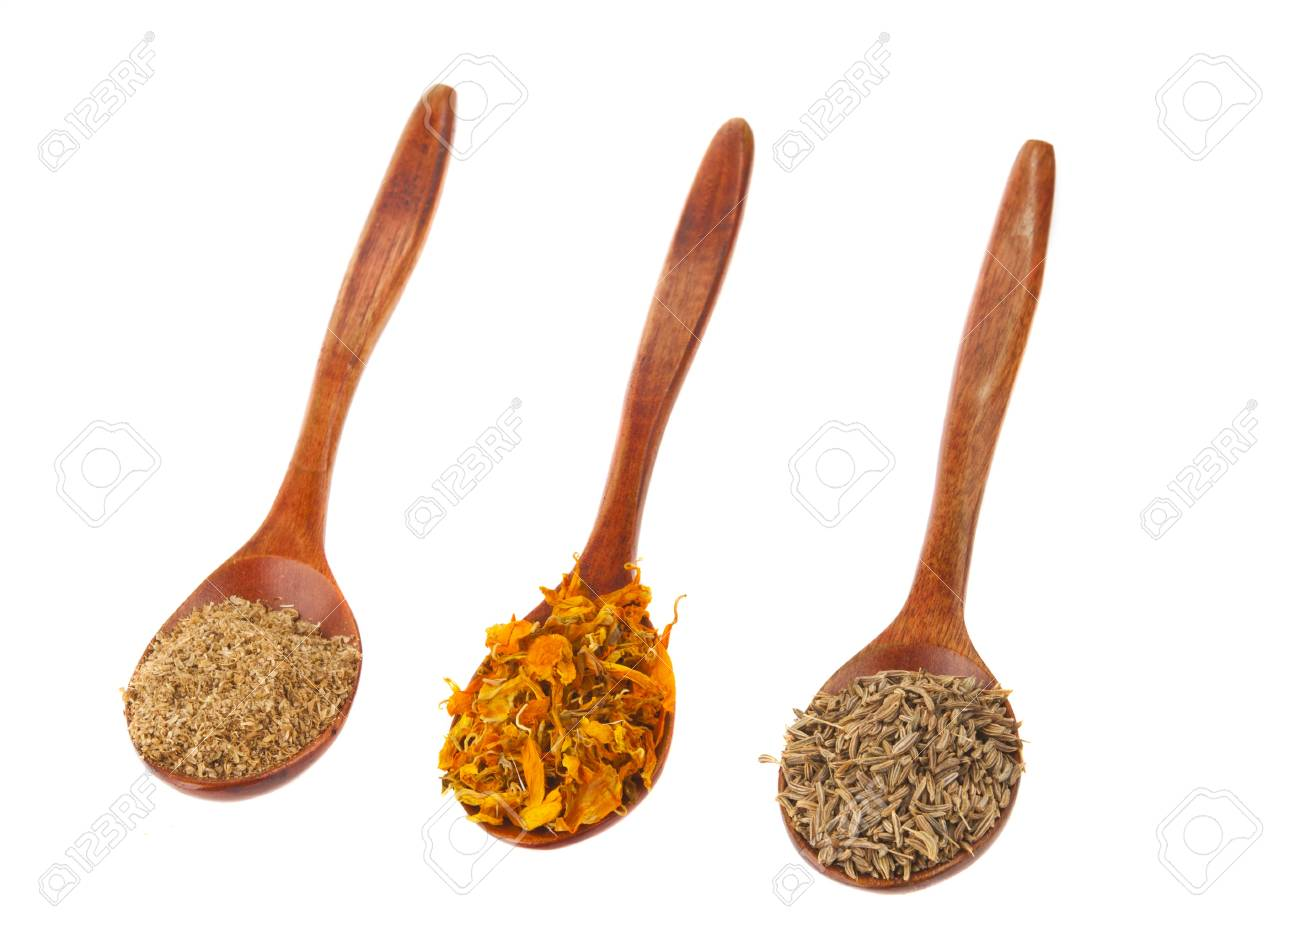 spice turmeric, coriander, cumin in wooden spoon isolated on a white background isolated on white background Stock Photo - 15901818